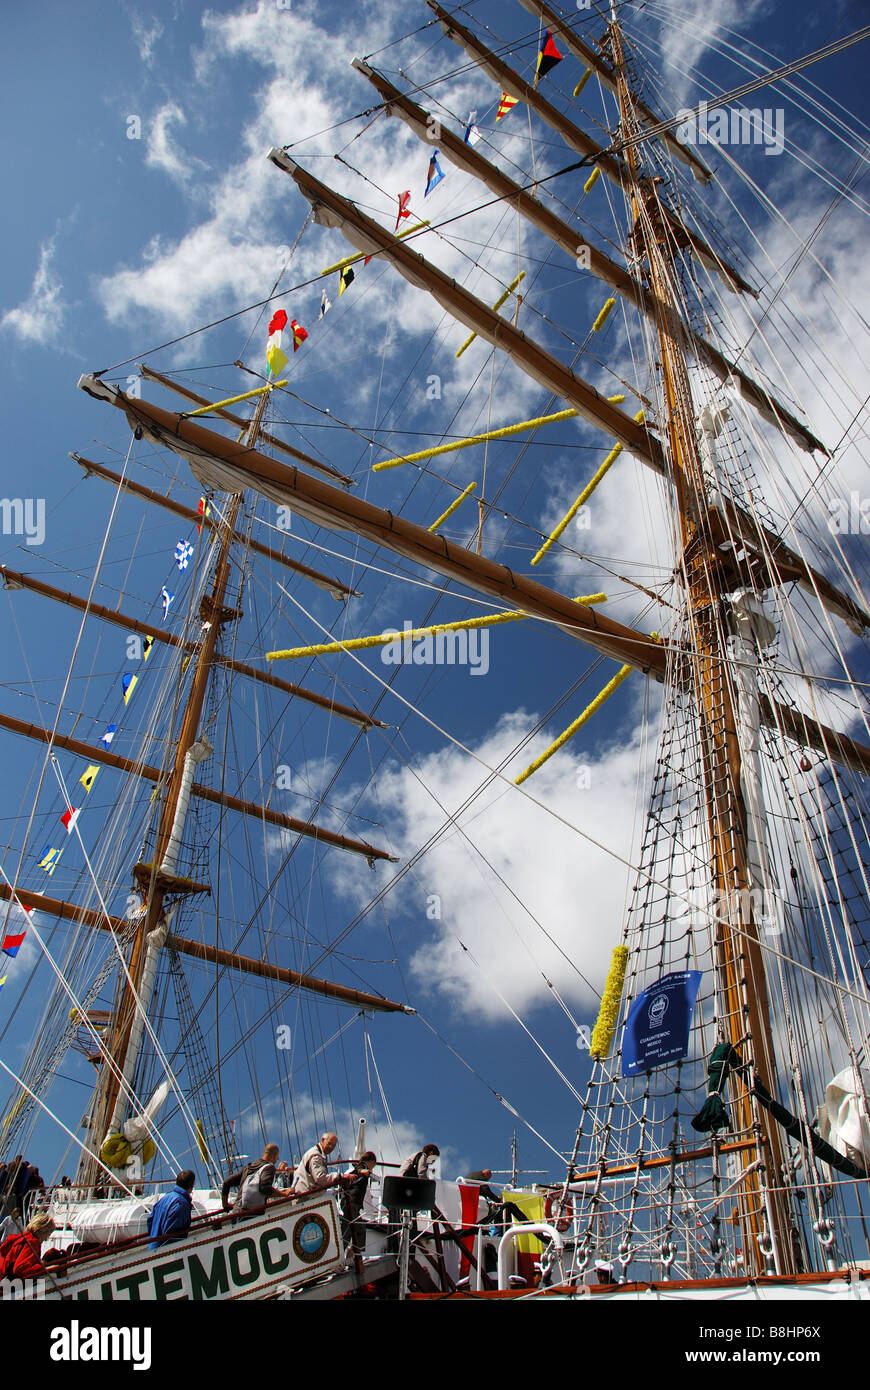 Tall Ship Cuauhtemoc moored at Liverpool prior to the Tall Ships Race - Stock Image